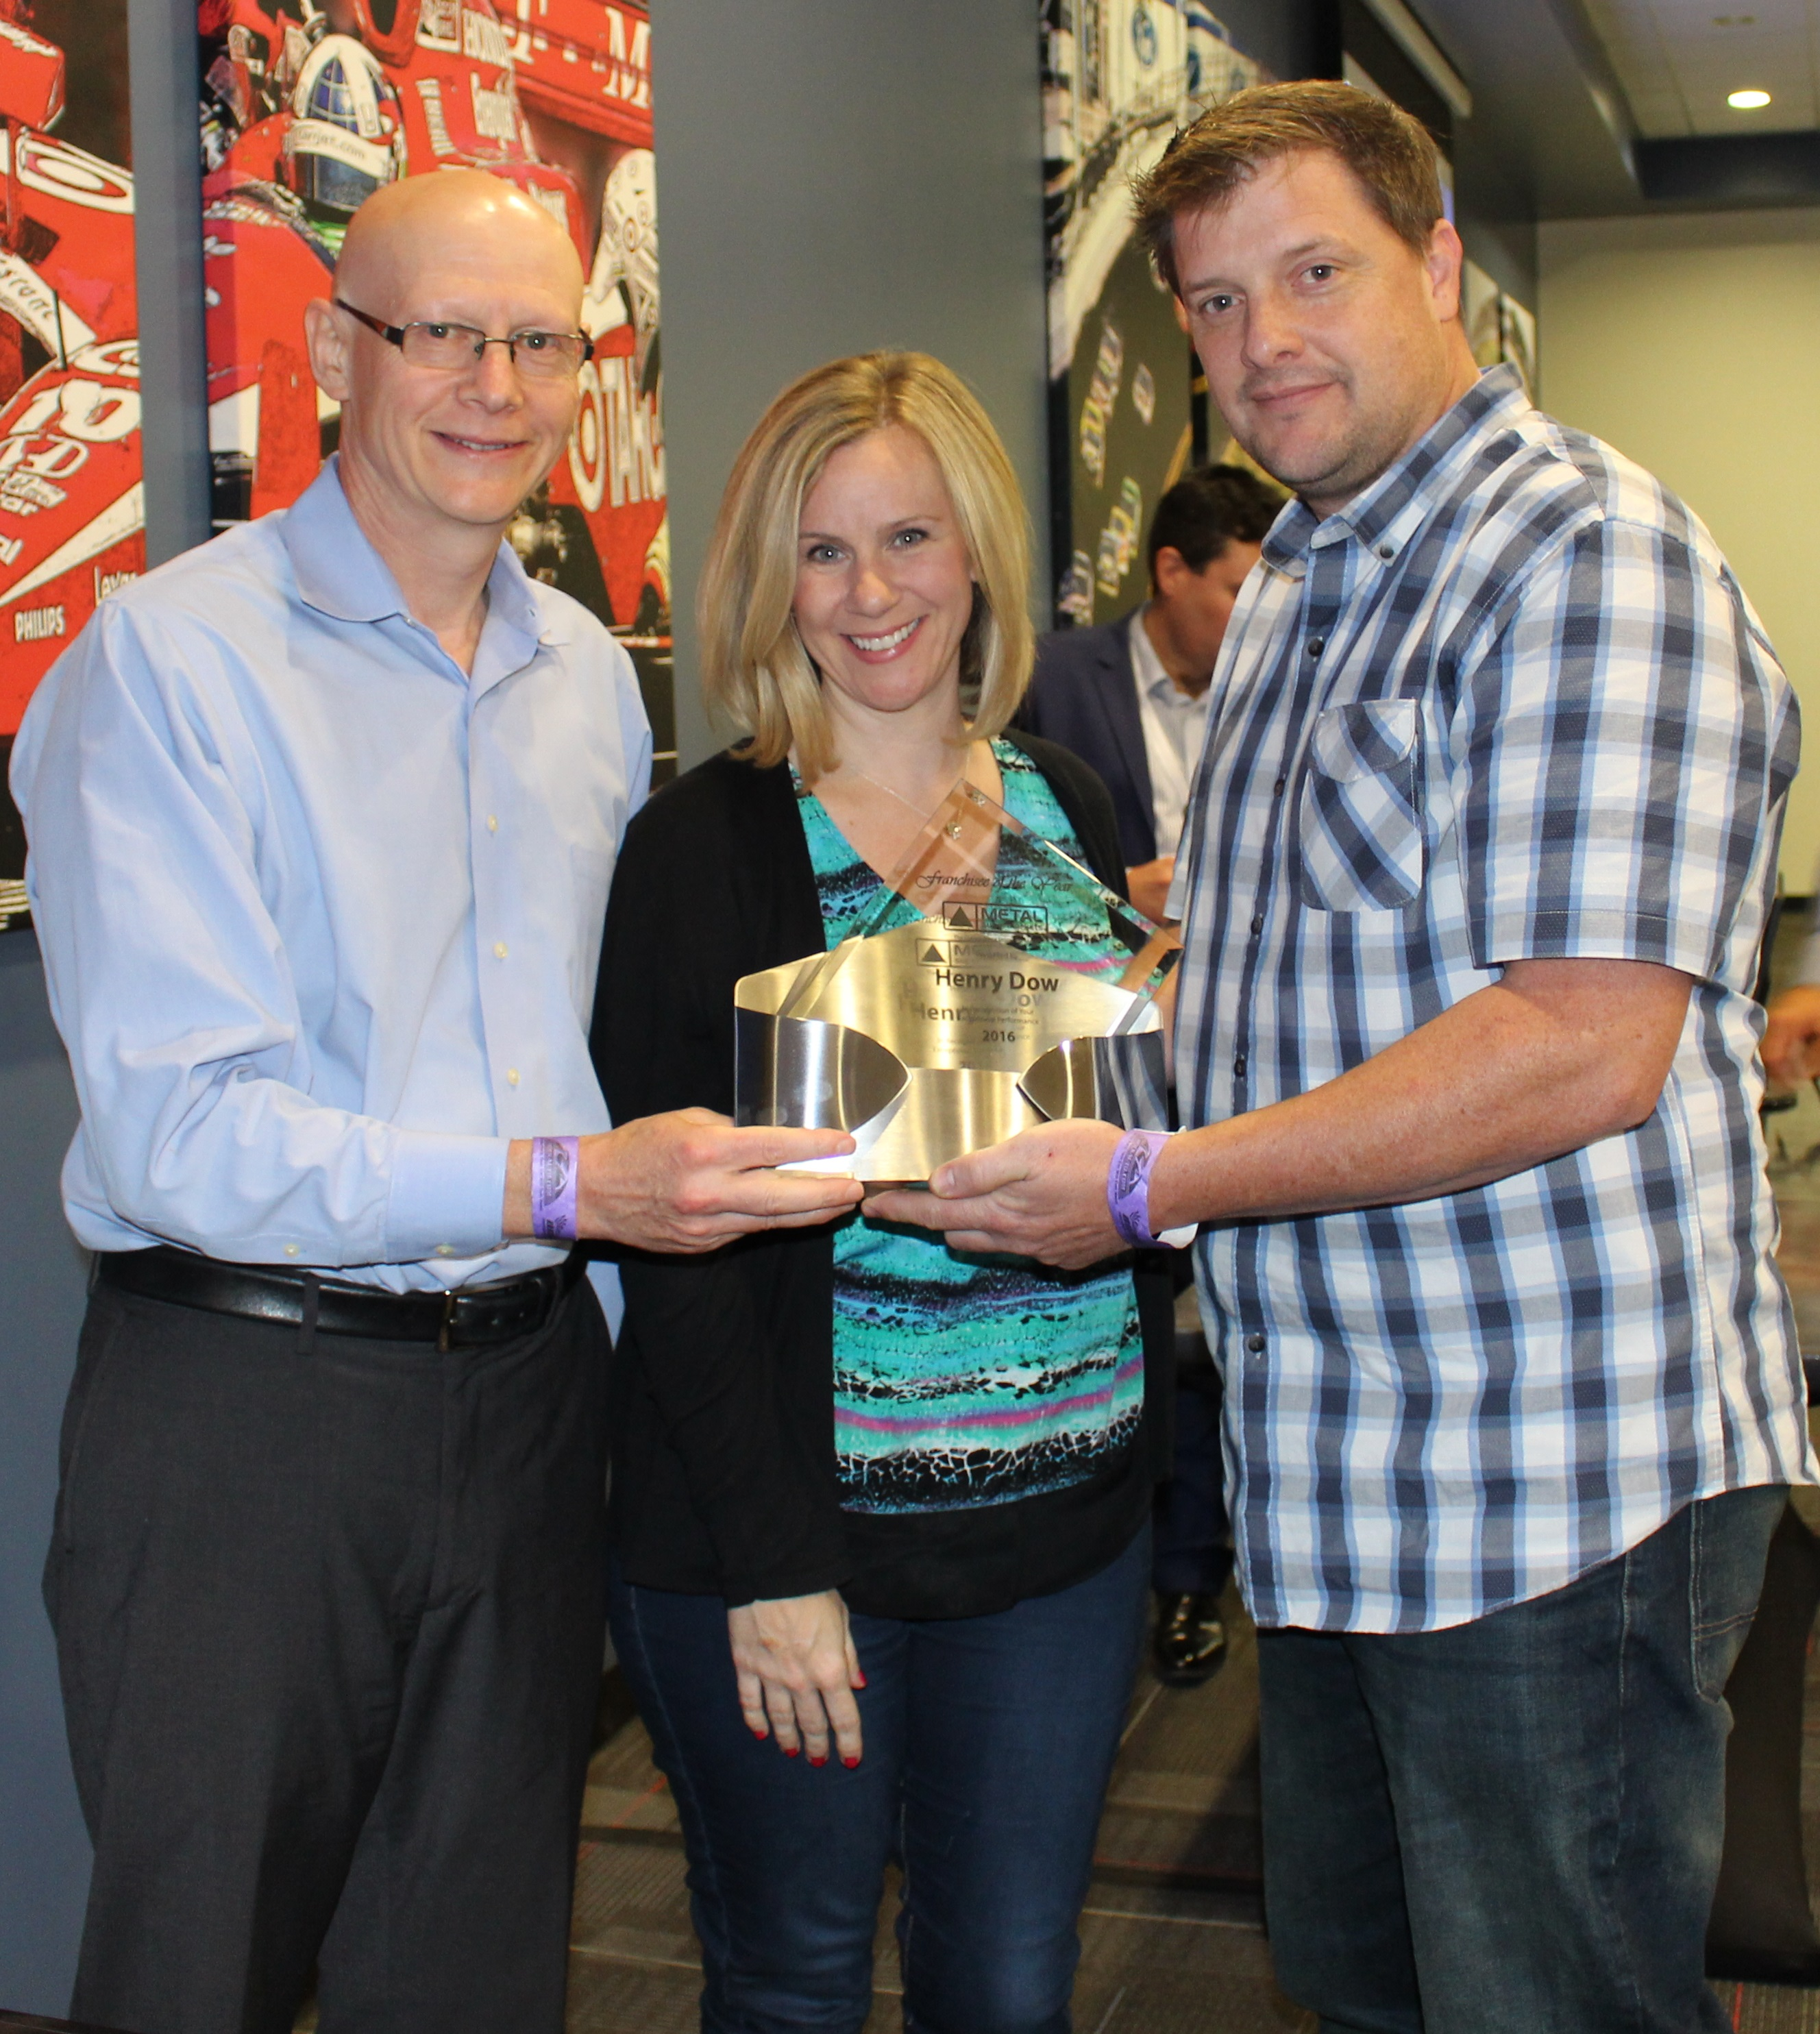 Henry and Michelle Dow of Metal Supermarkets Baltimore & Boston North (right) with Metal Supermarkets President & CEO, Stephen Schober